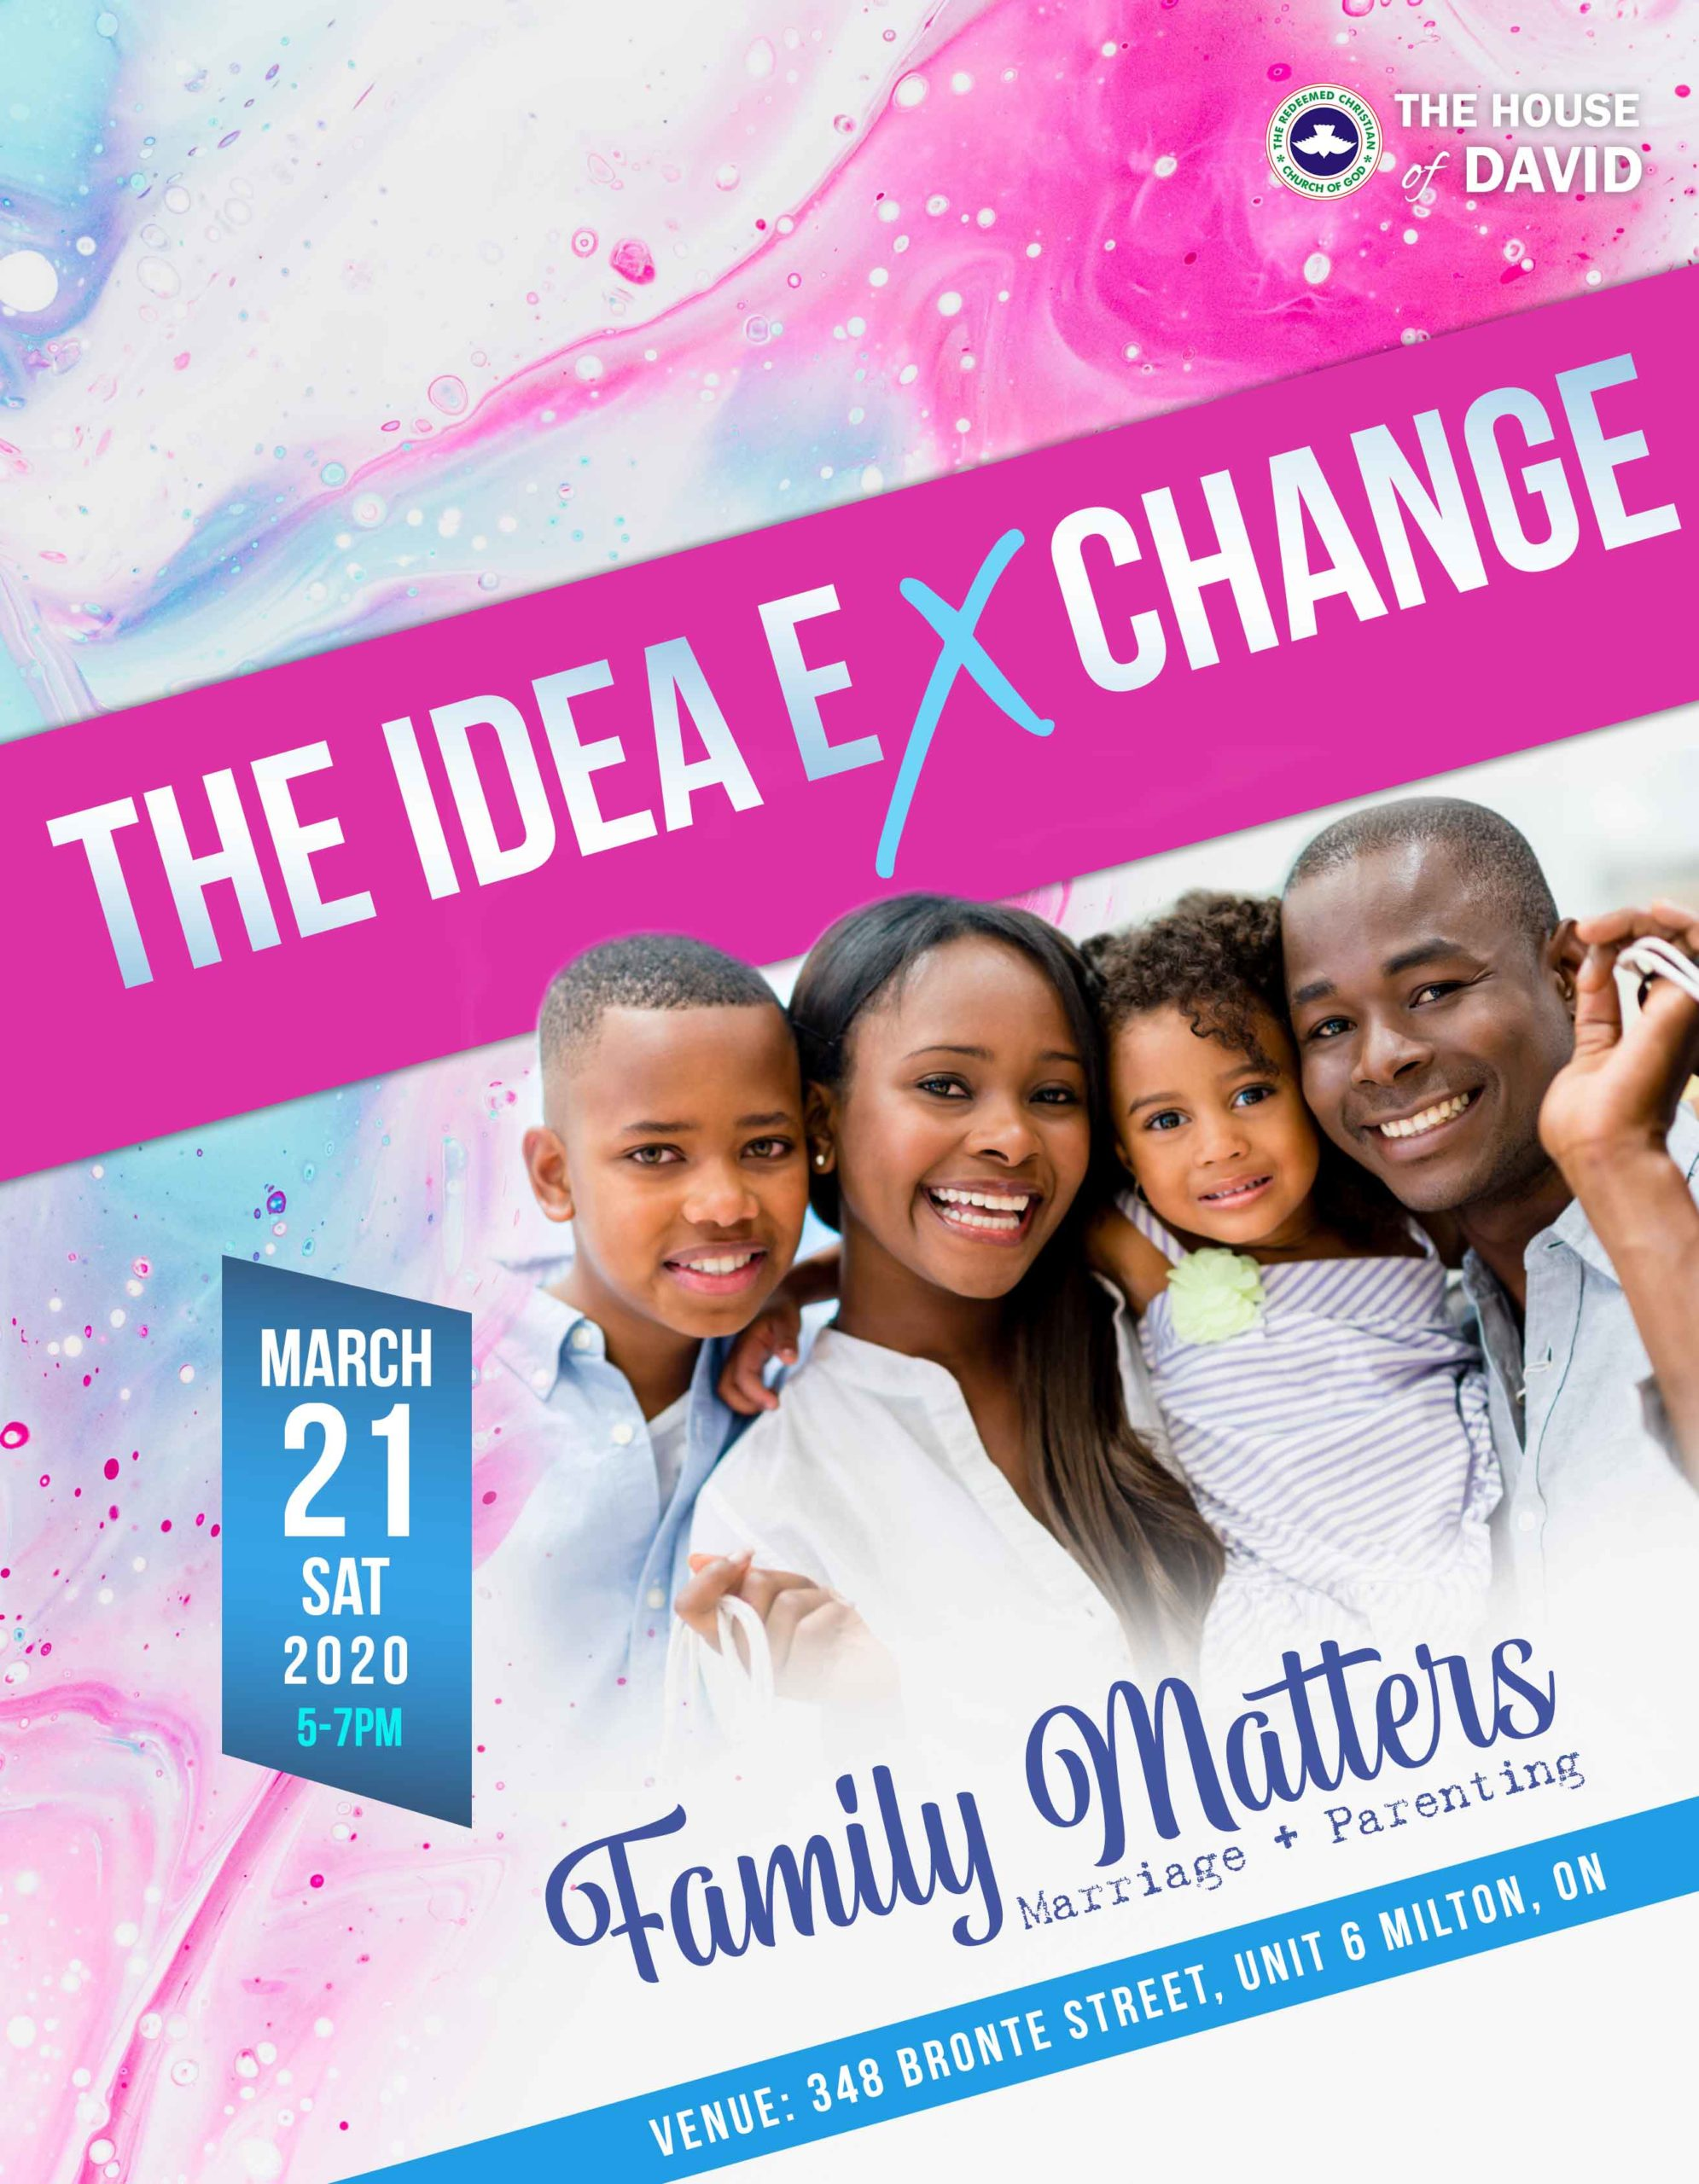 The Idea eXchange – Family Matters: Marriage + Parenting